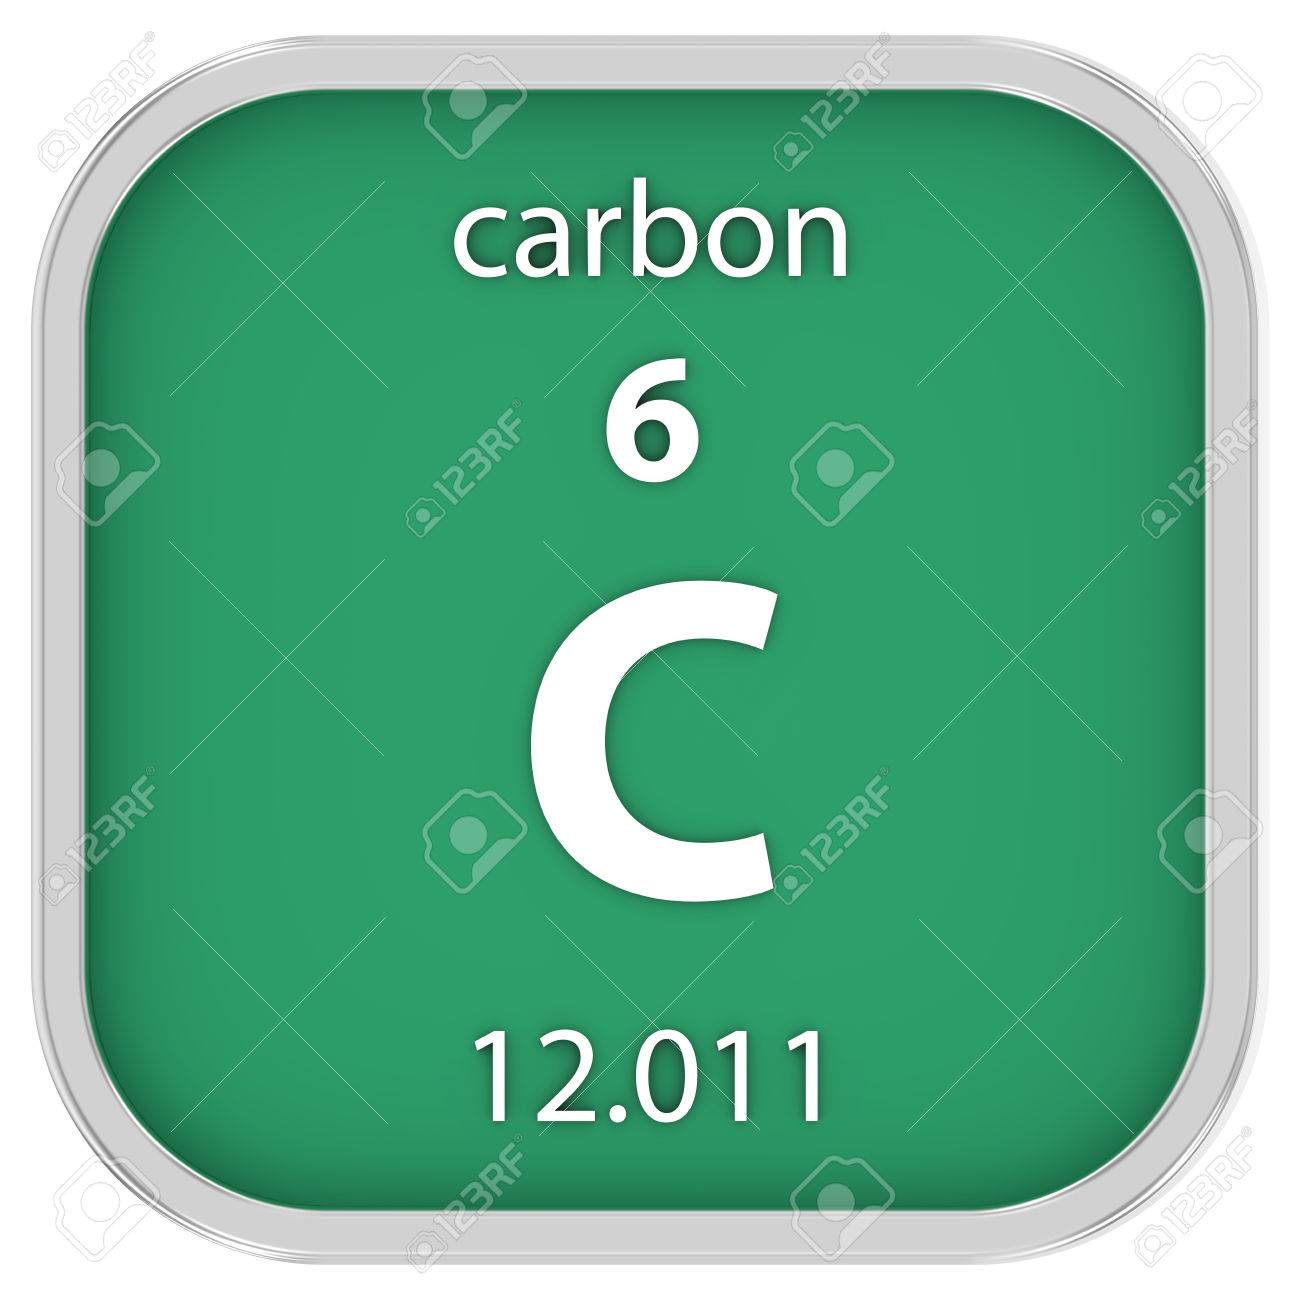 carbon material on the periodic table stock photo 41093496 - Periodic Table Carbon